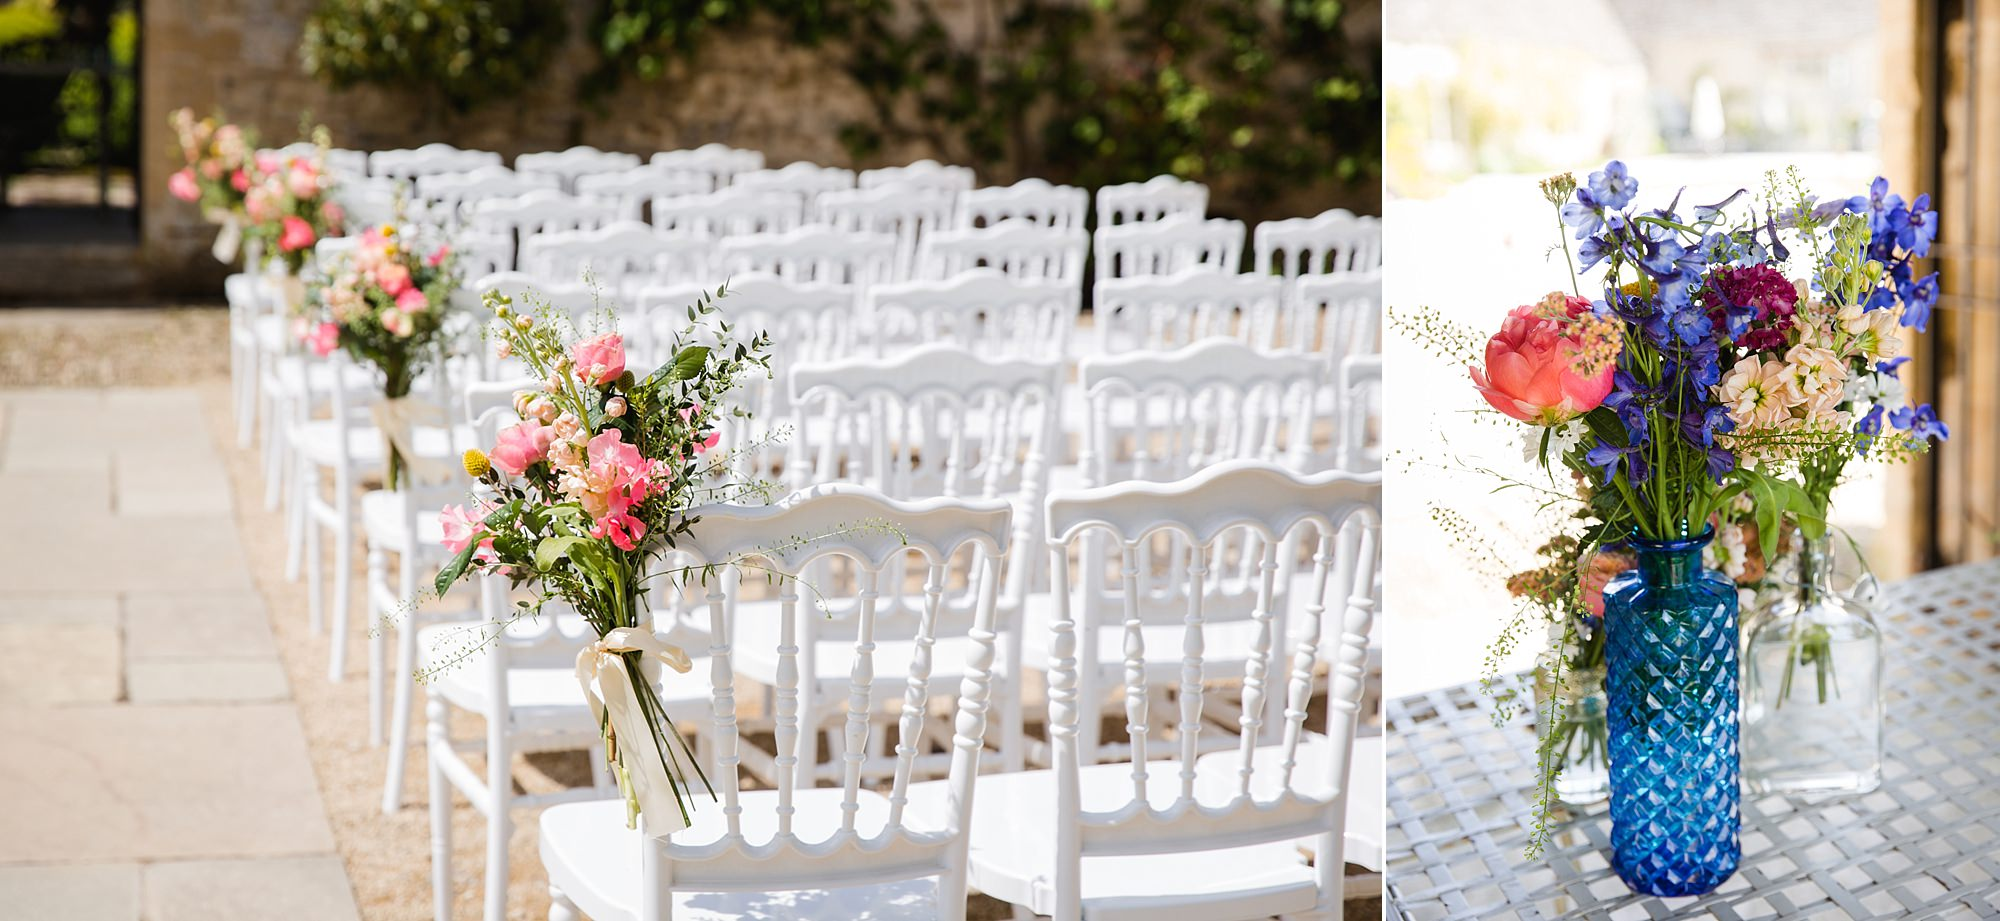 Caswell House Wedding chairs and floral decorations